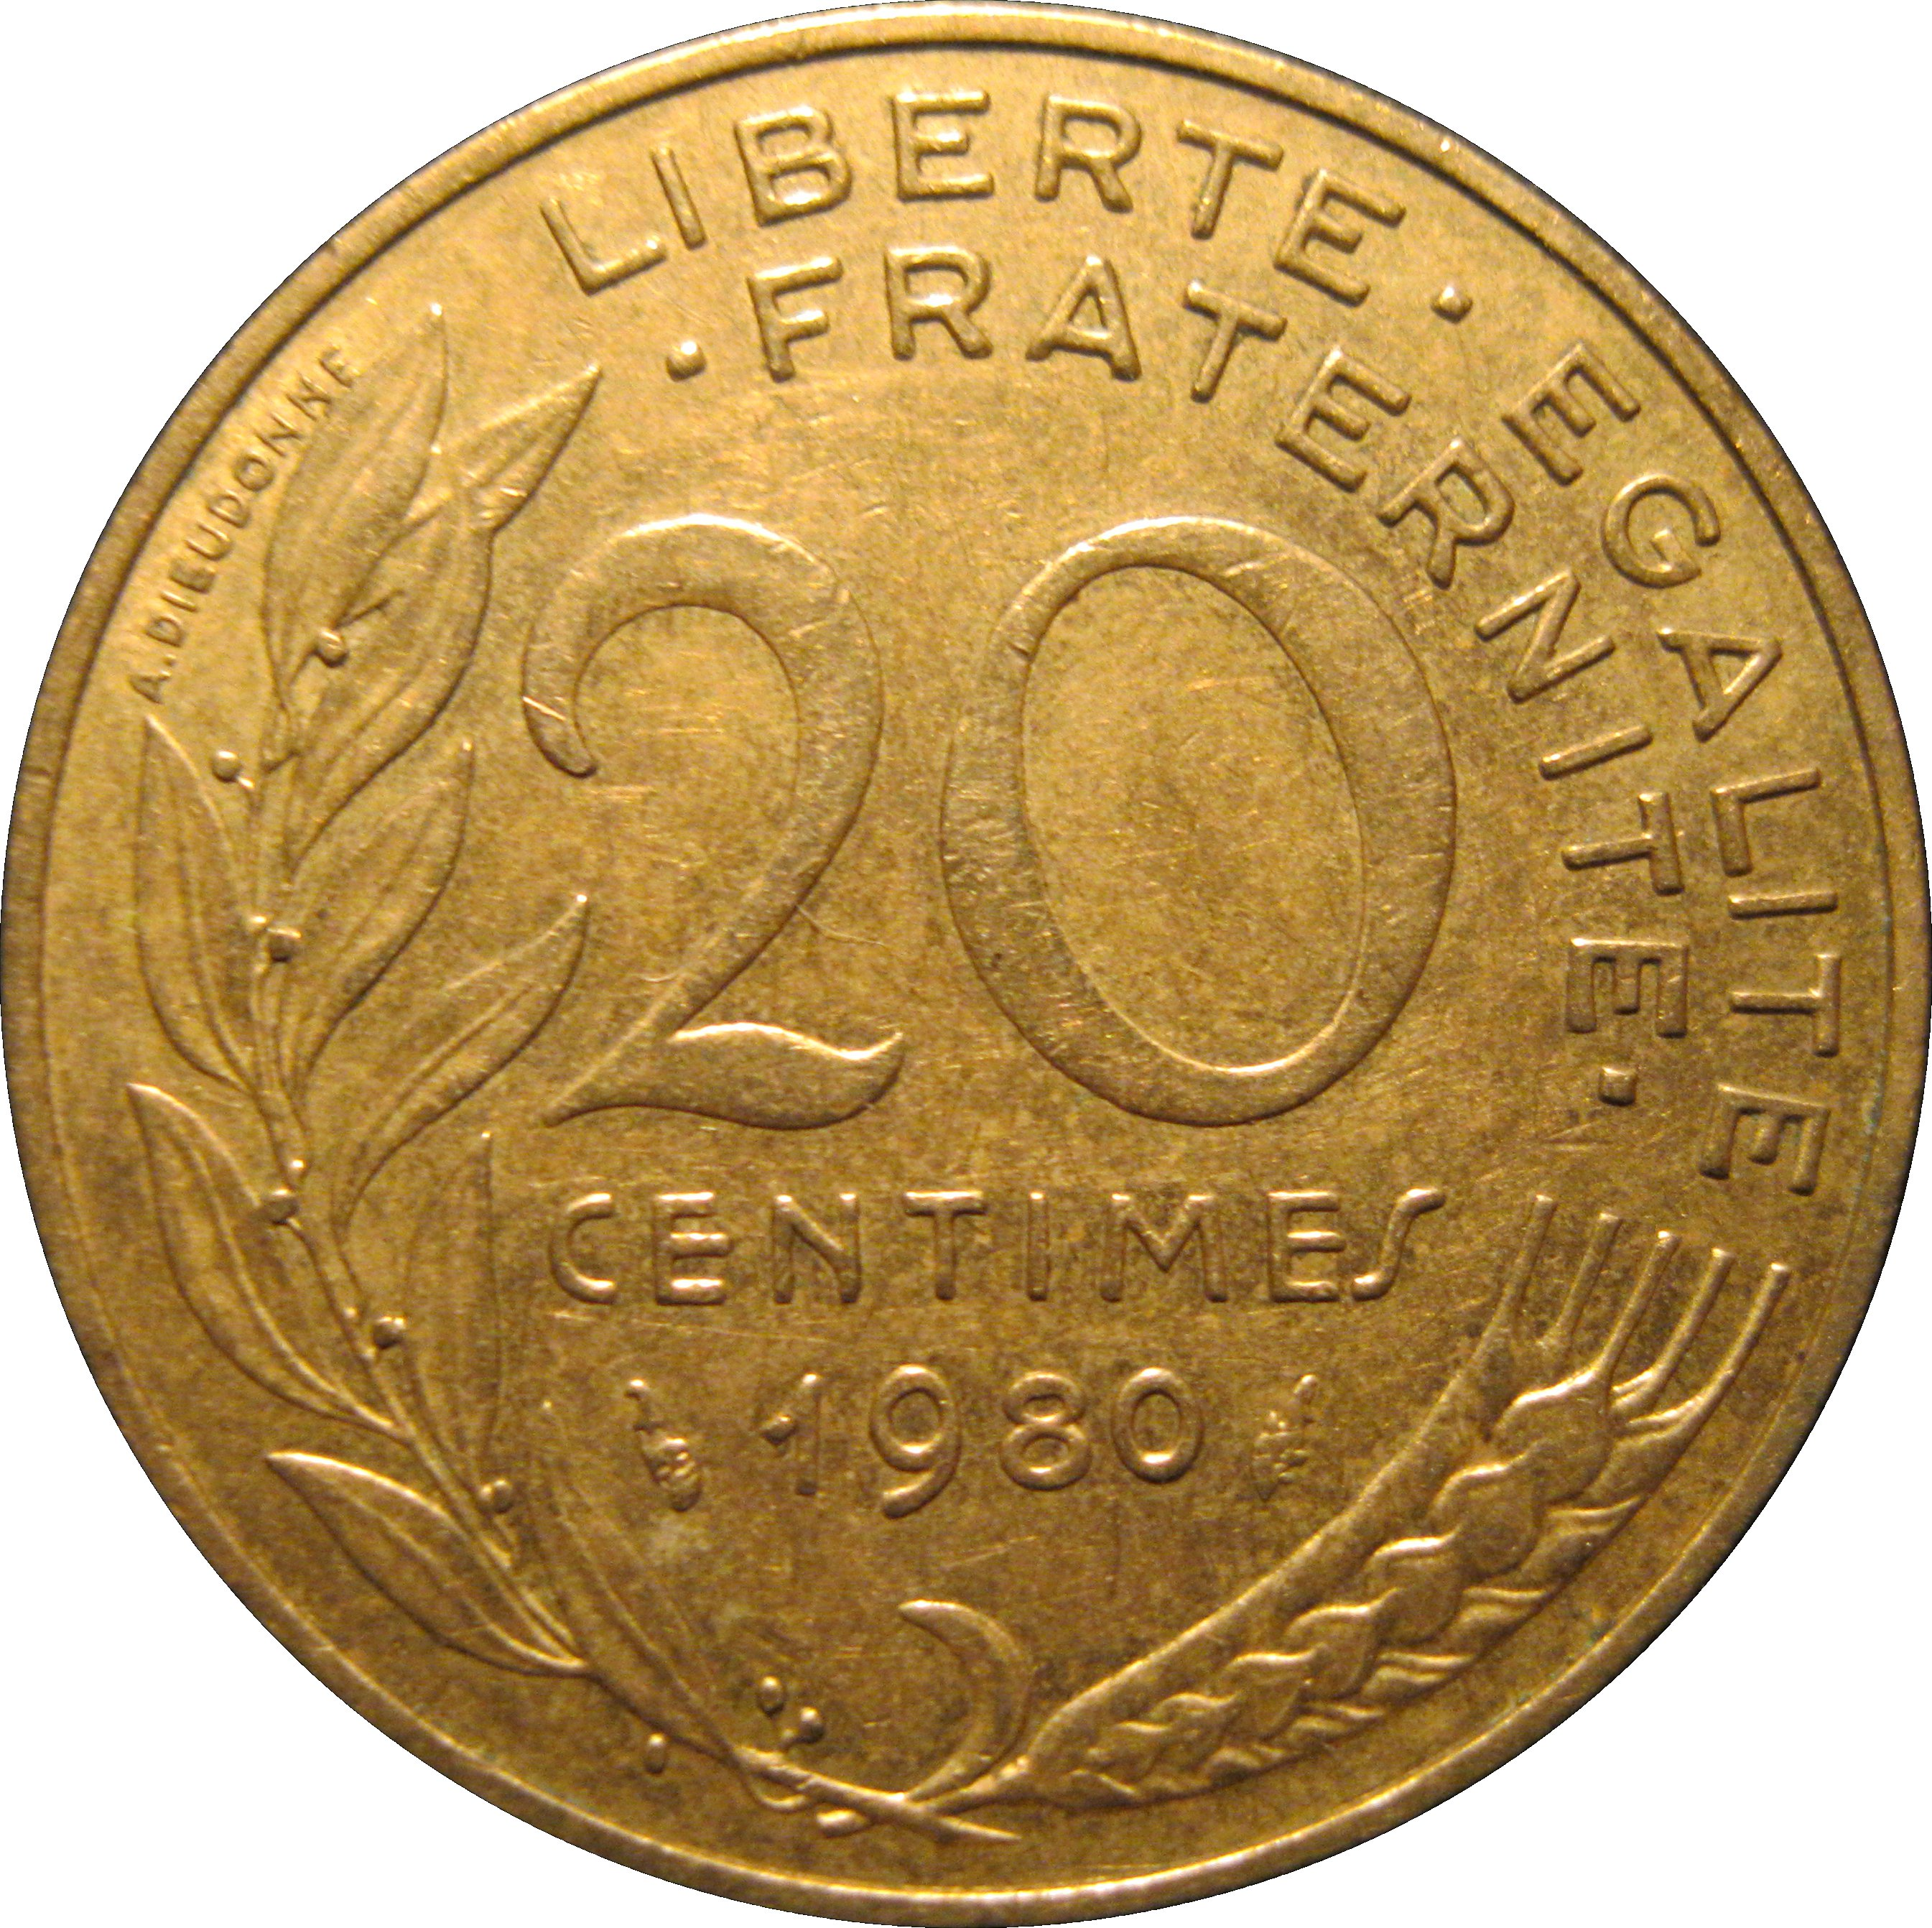 France: coins of different historical periods